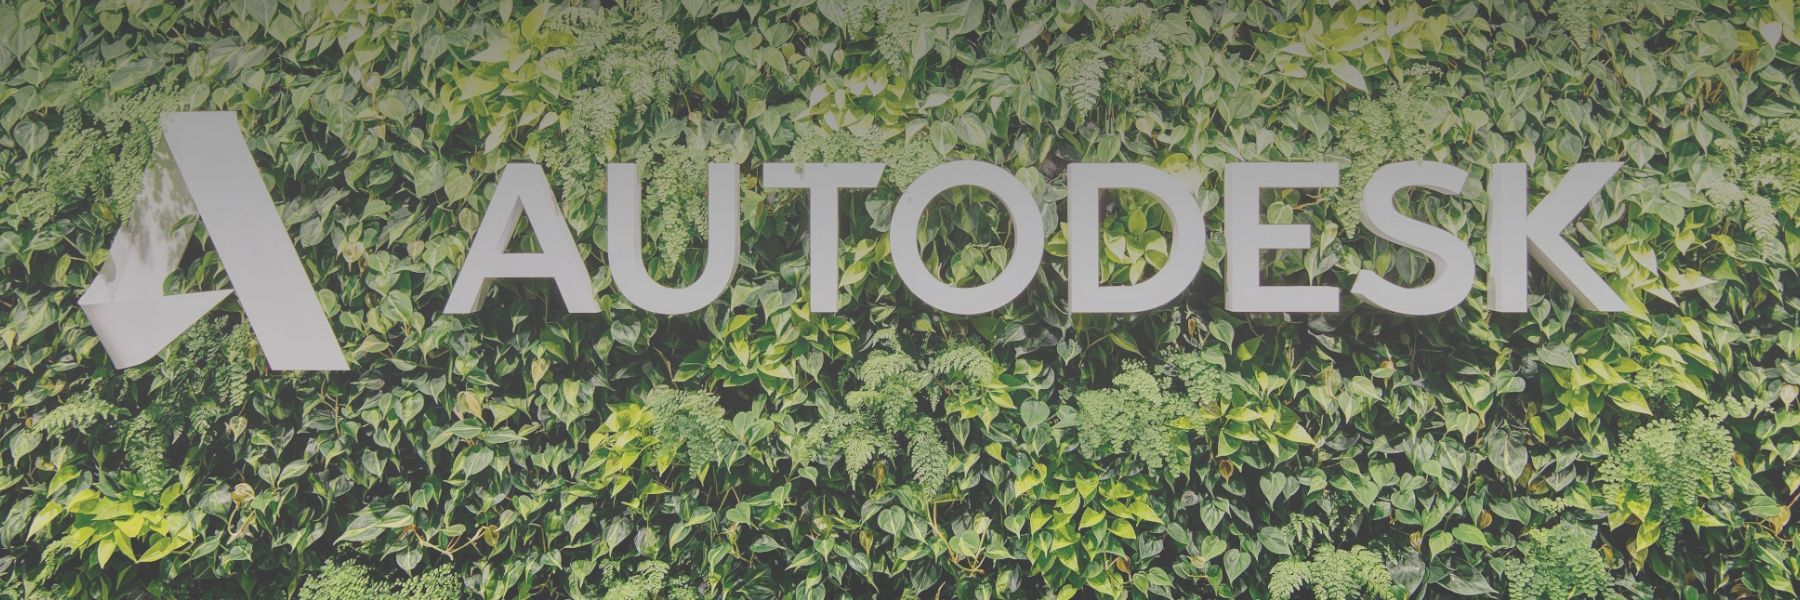 Covid19: Autodesk Facilita lo SmartWorking e la Collaborazione Cloud